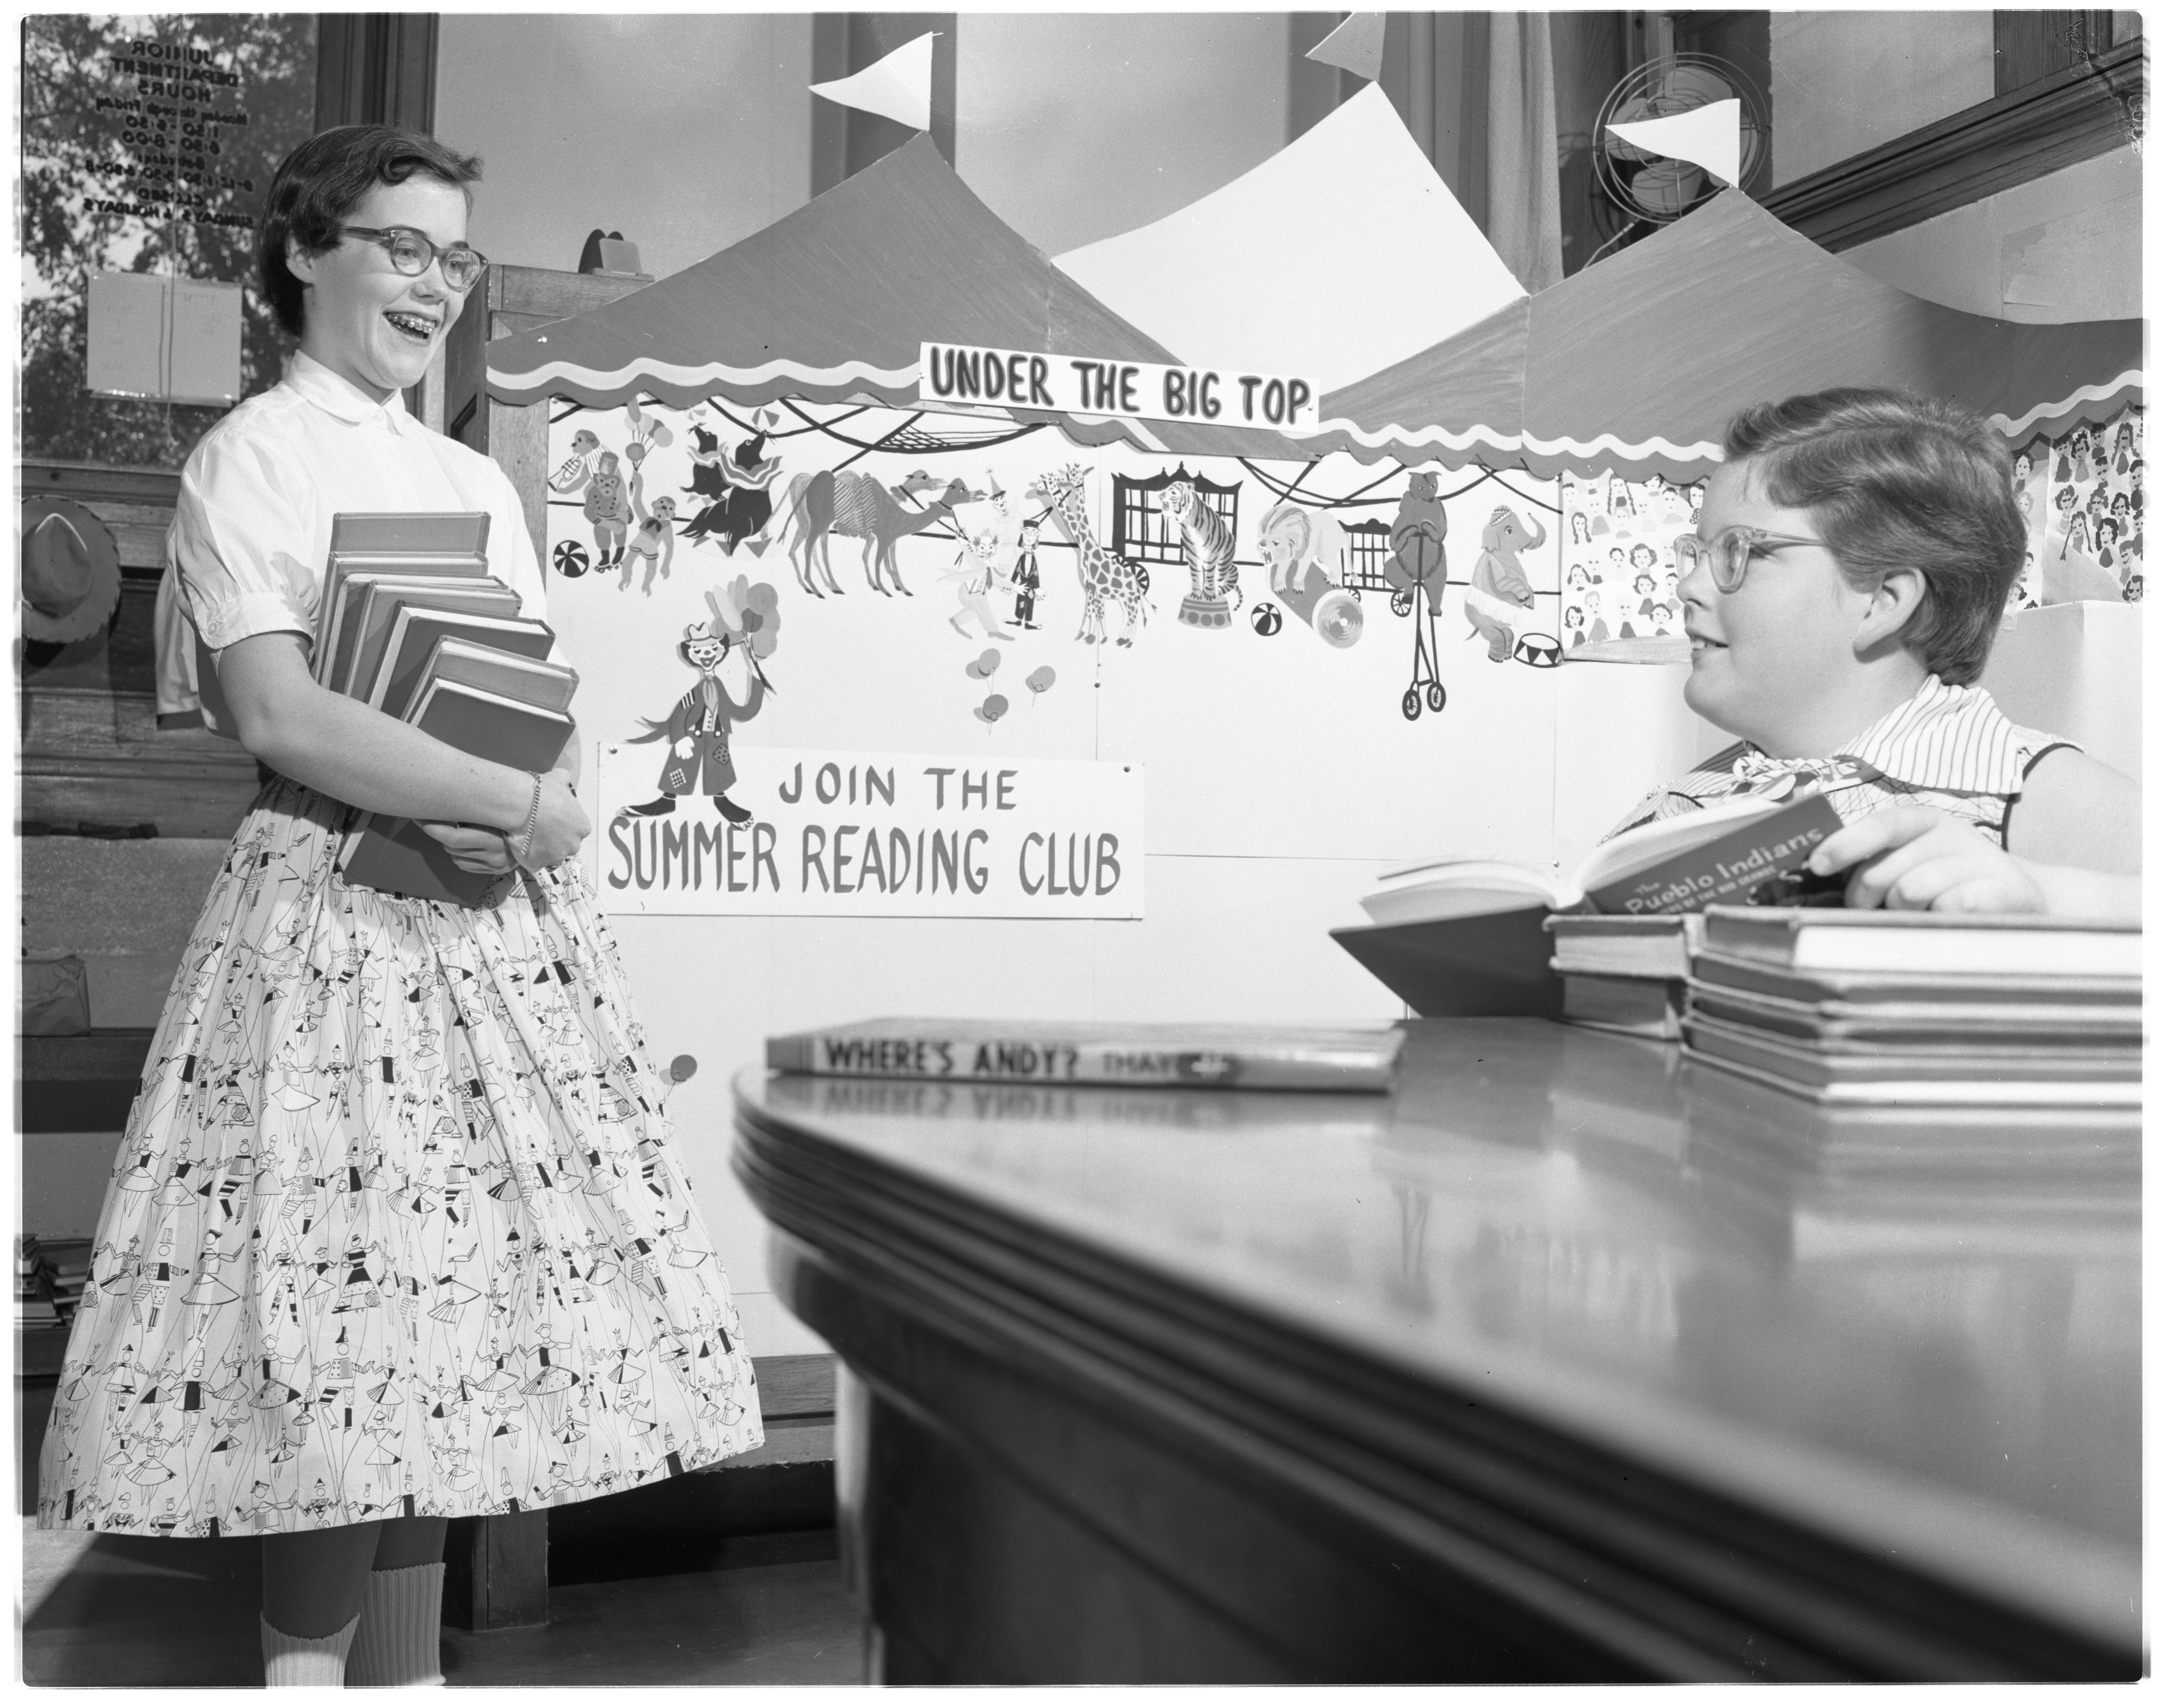 Joining the Ann Arbor Public Library's Summer Reading Club, June 1955 image